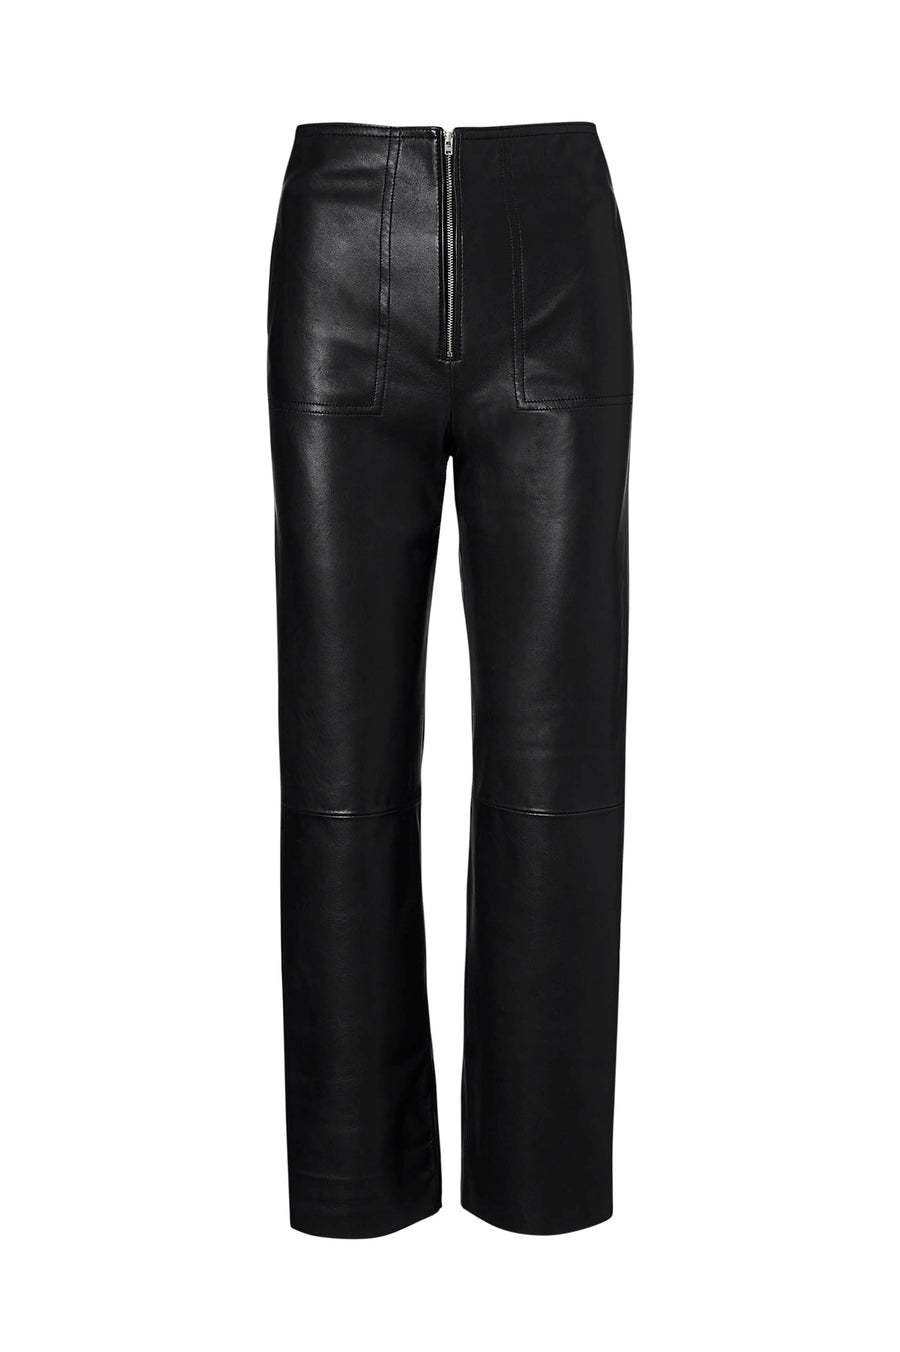 LEATHER ZIP FRONT TROUSER, hits just above ankle, straight leg, BLACK color